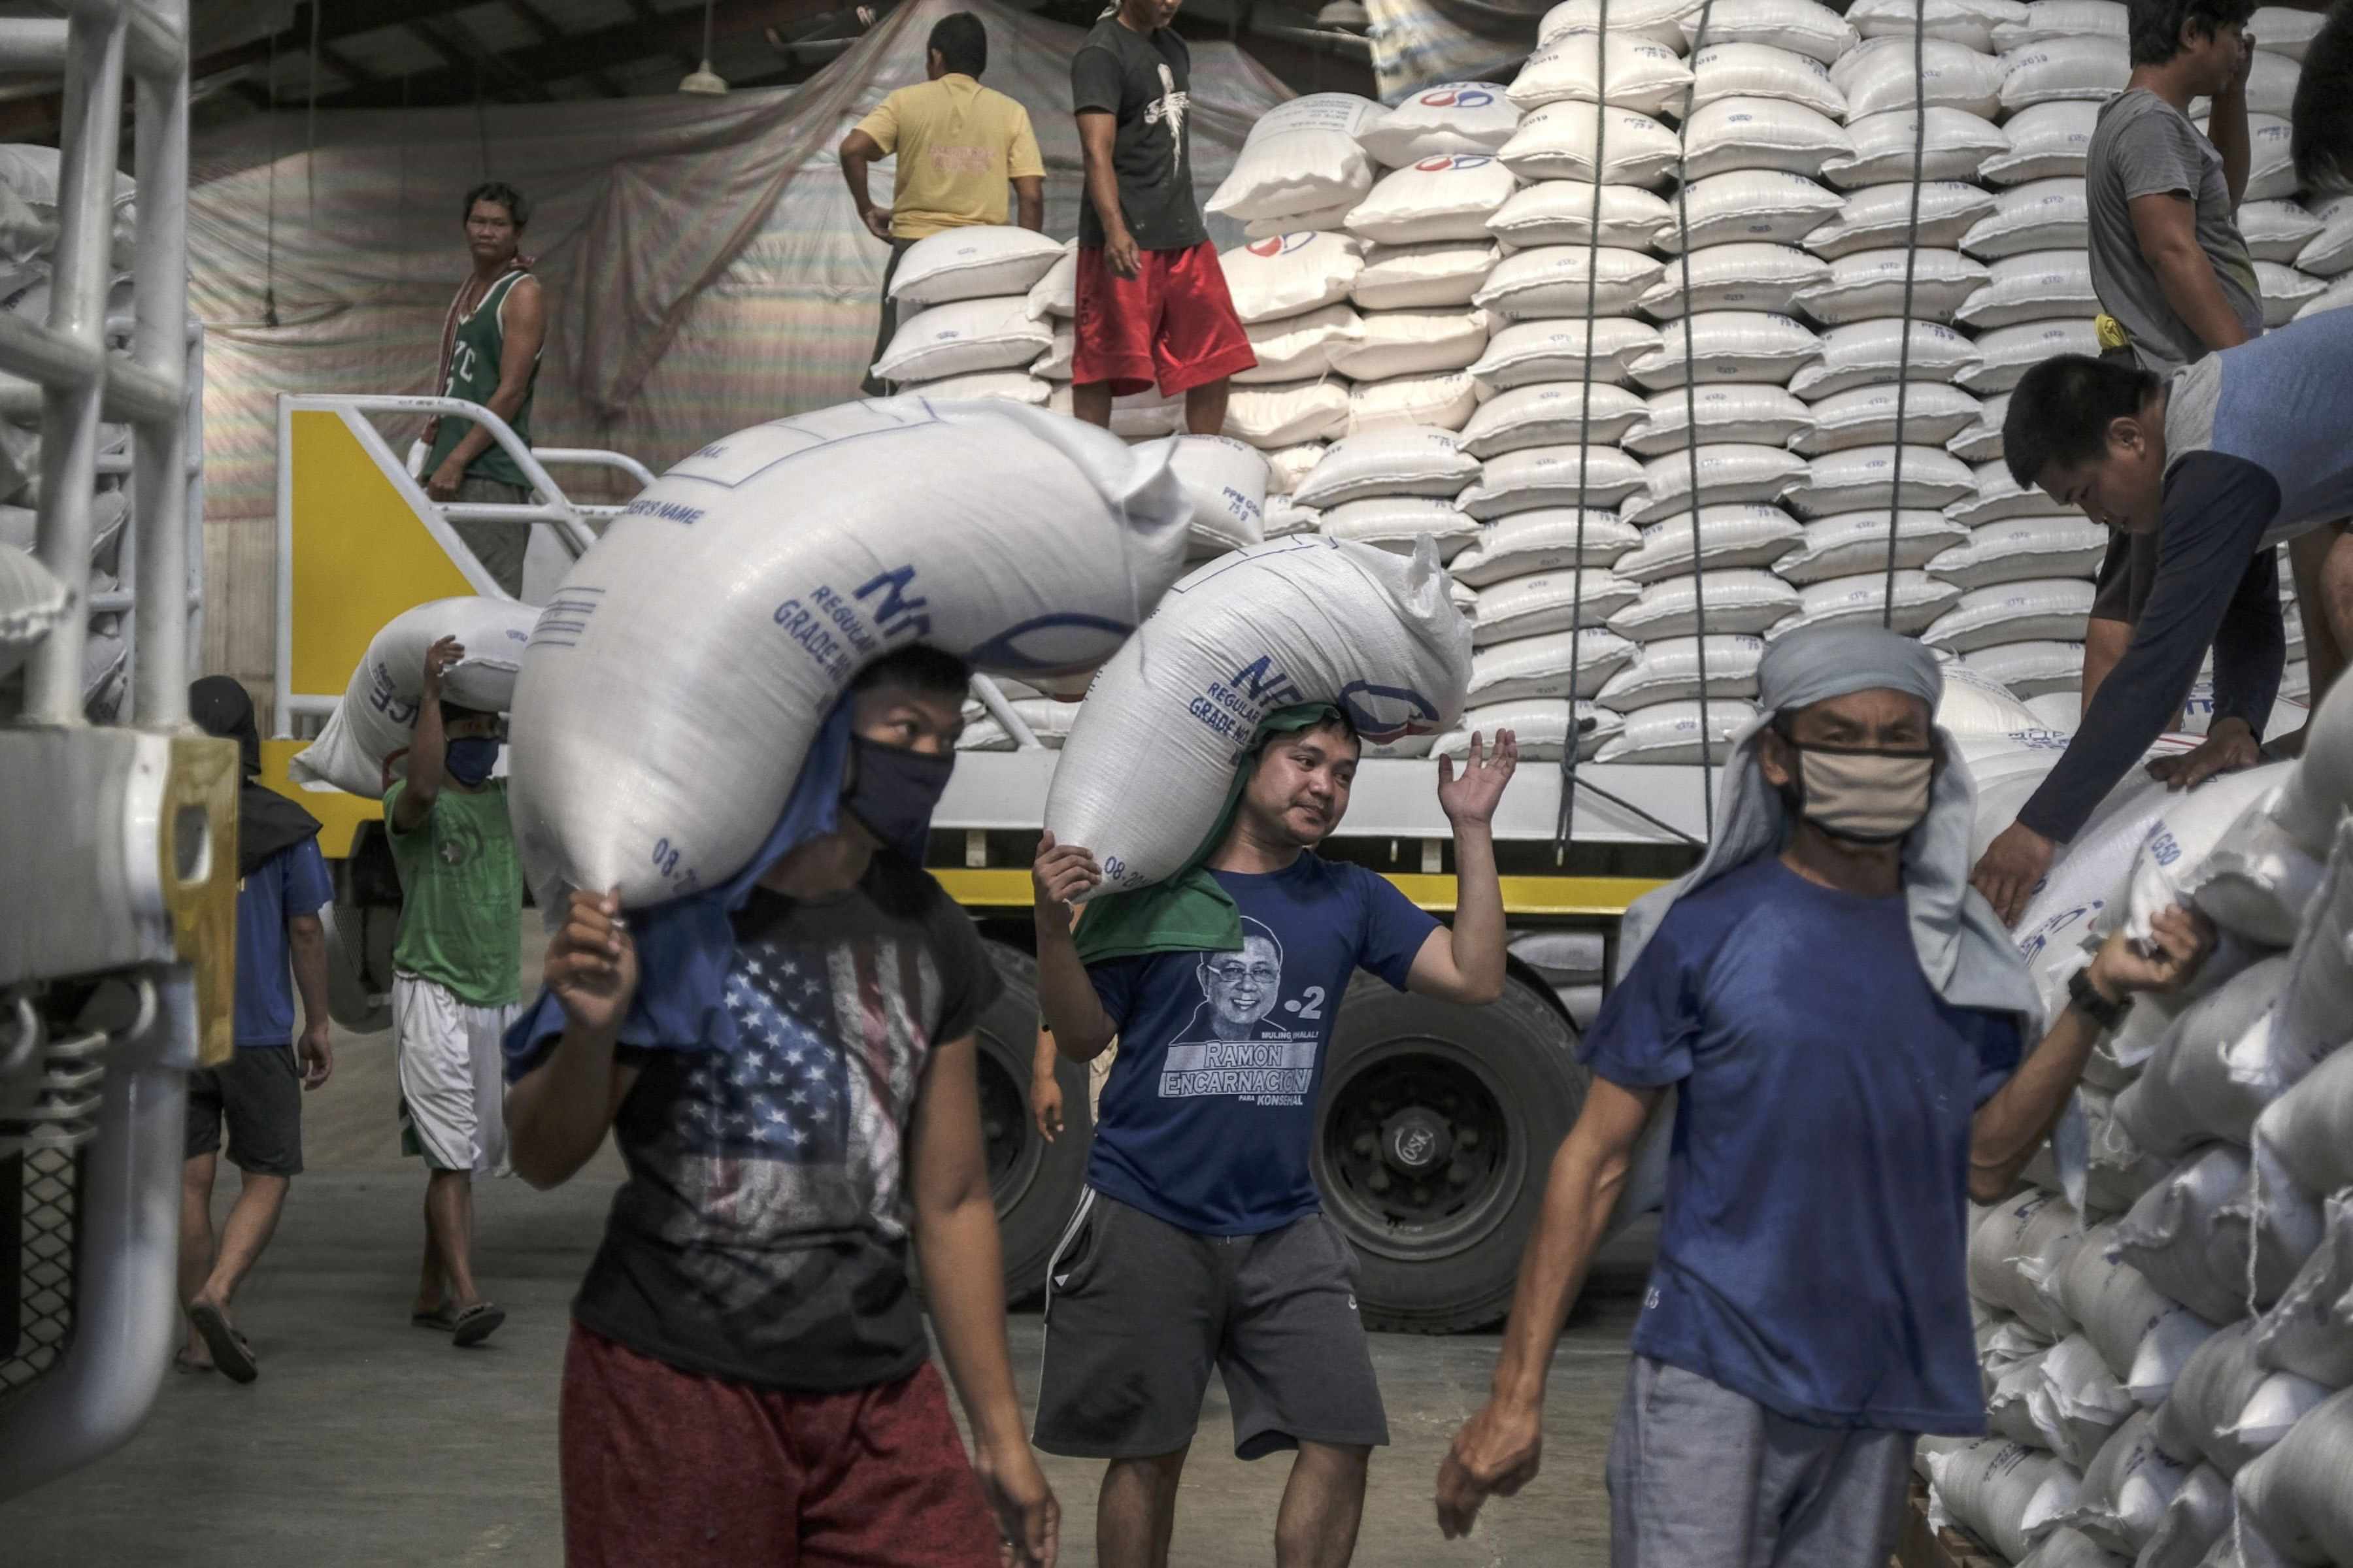 Workers carry sacks of rice inside a National Food Authority warehouse in Valenzuela, Philippines, on March 26, 2020. MUST CREDIT: Bloomberg photo by Veejay Villafranca.